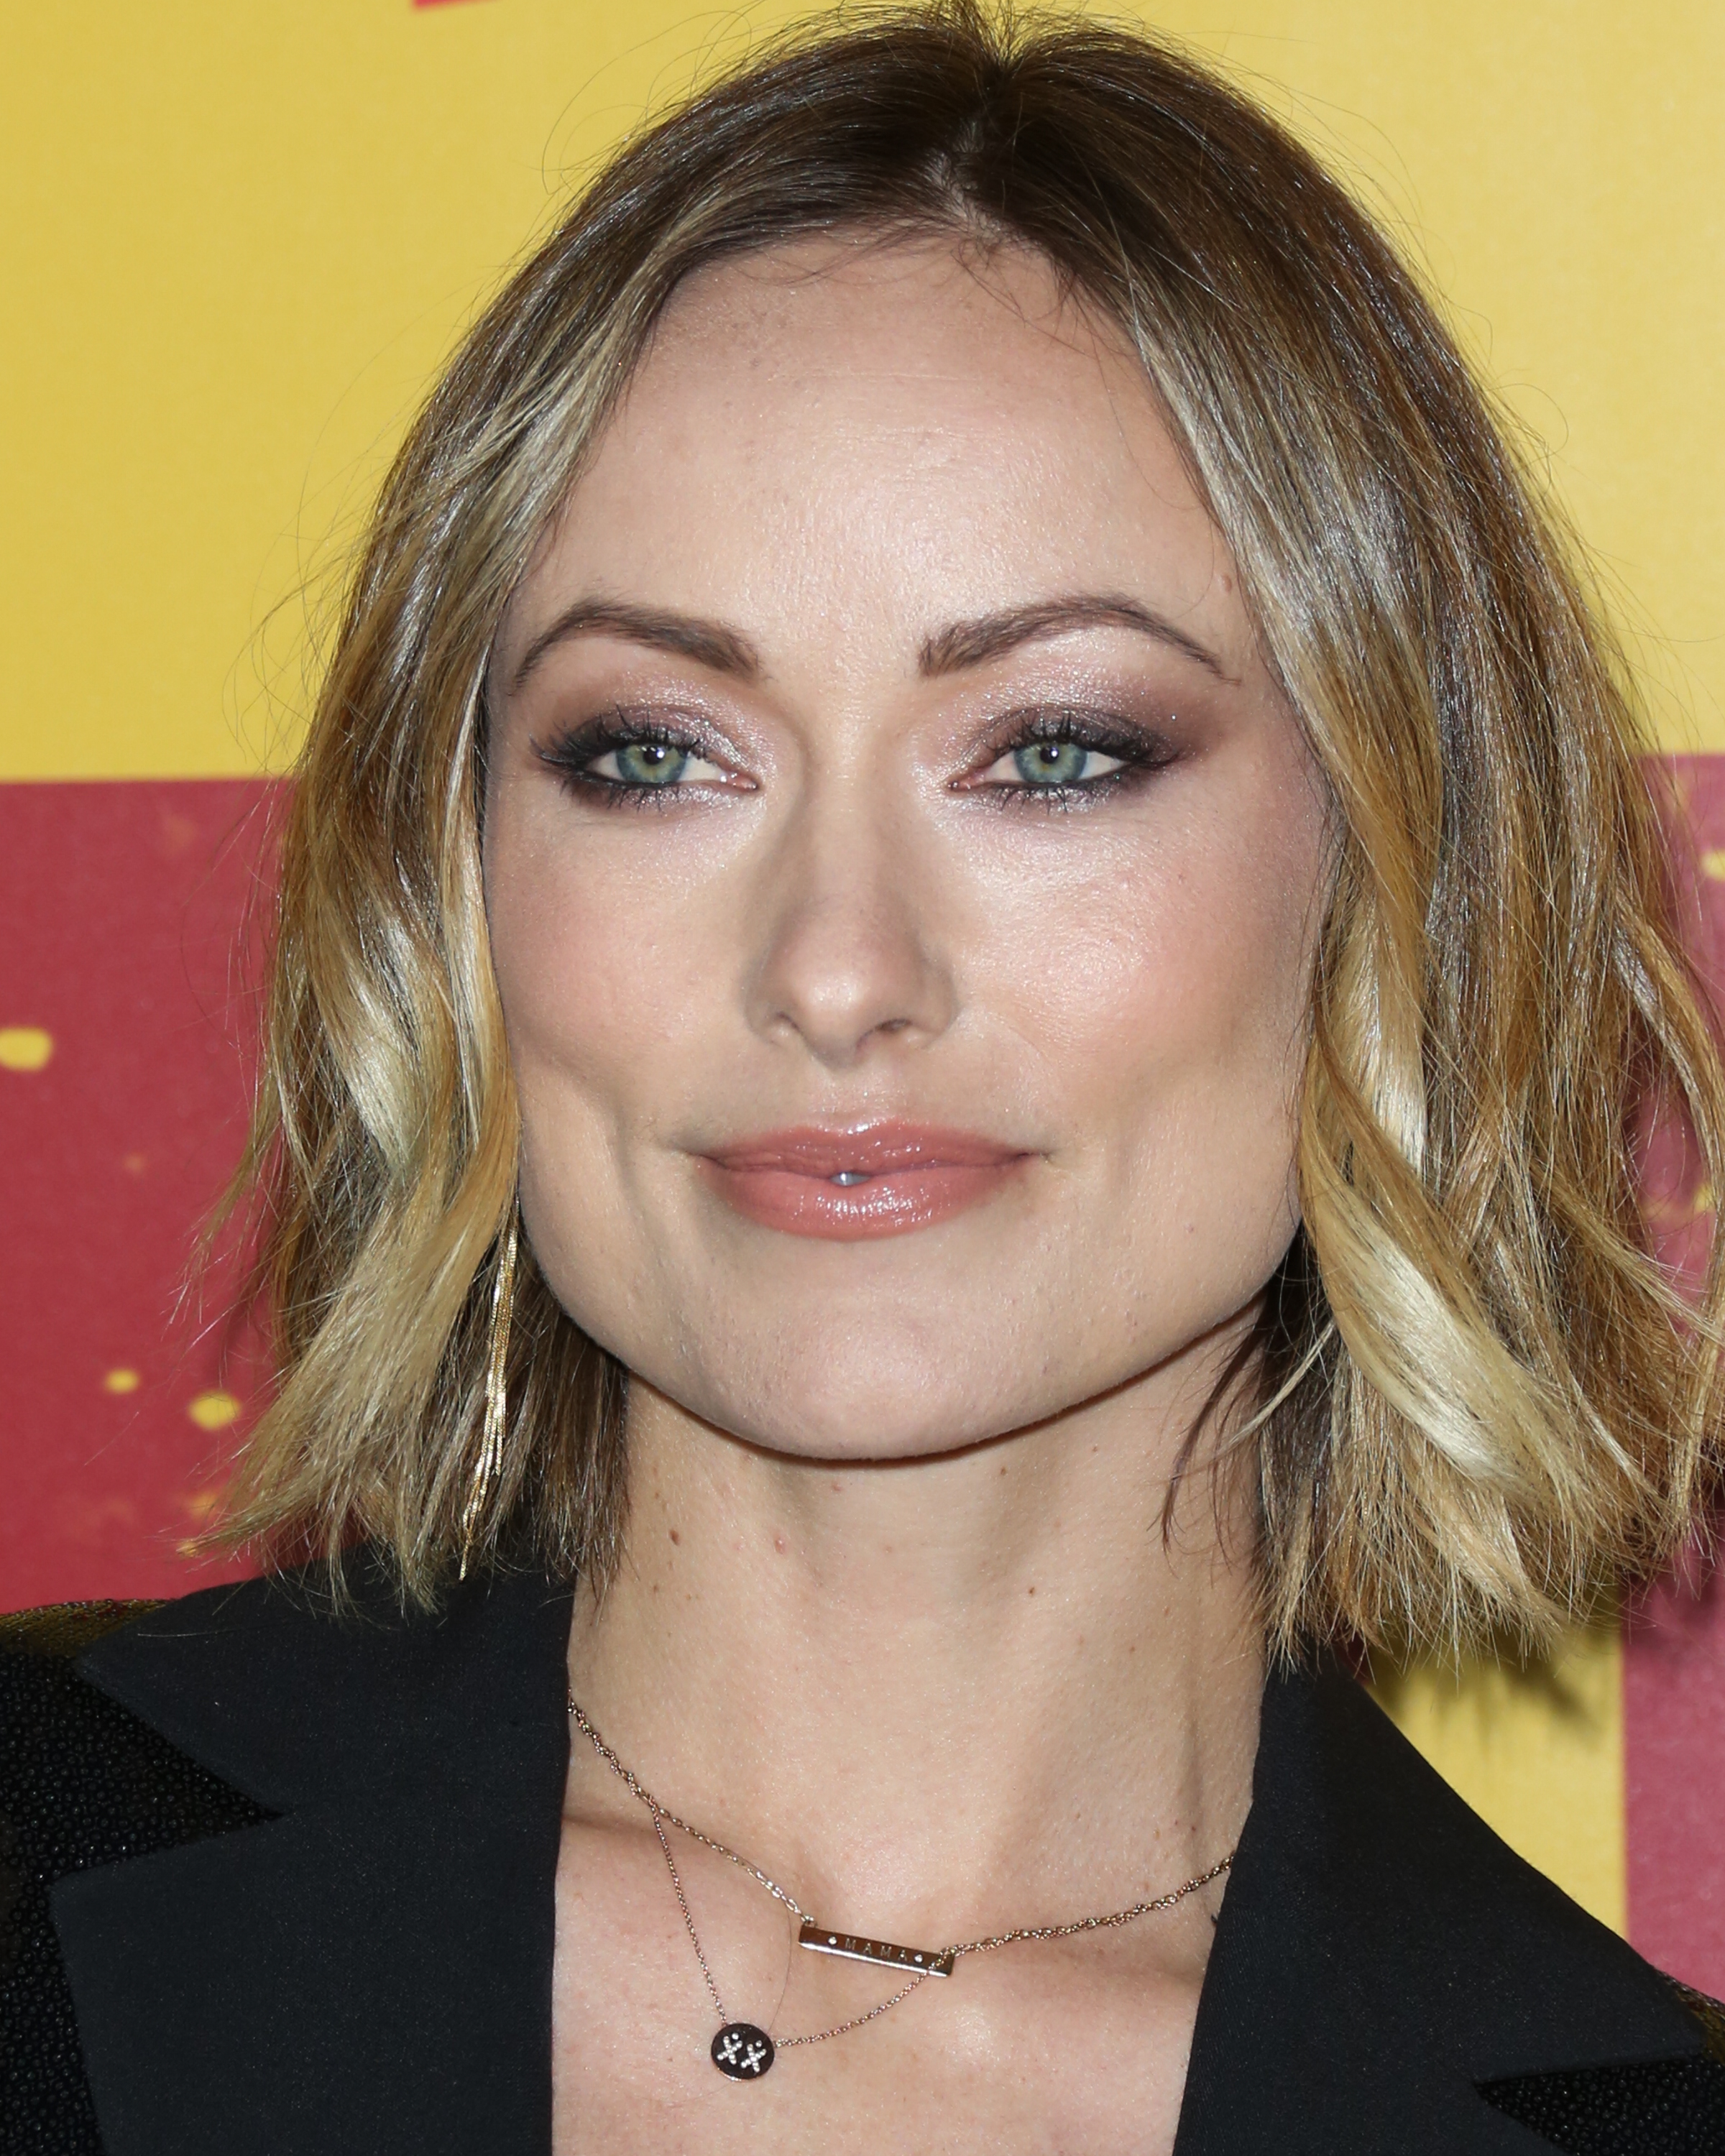 AB Olivia Wilde Getty Images